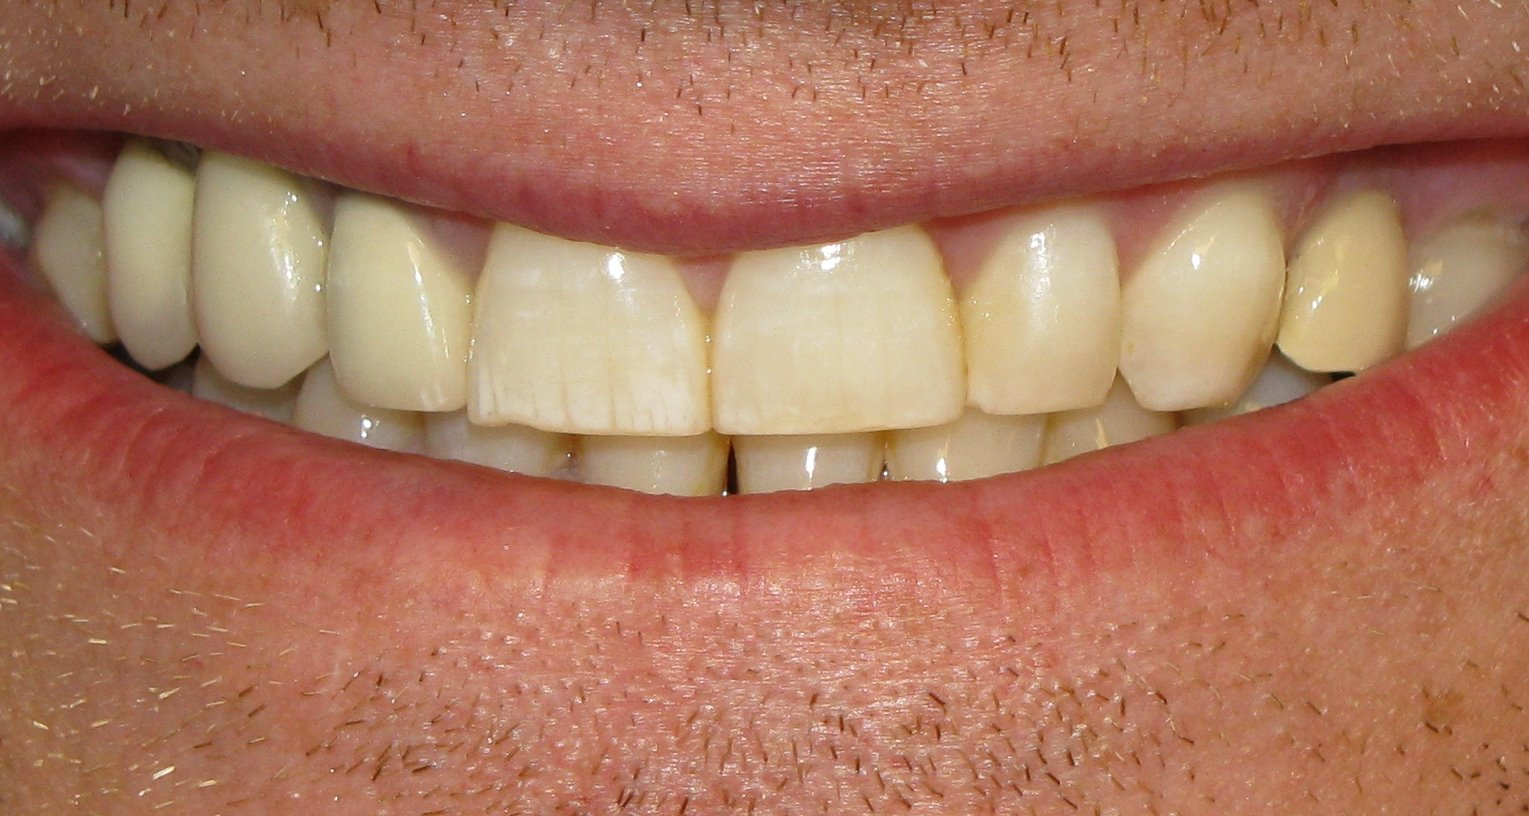 Inflammation of the Tooth Pulp - Pulpitis